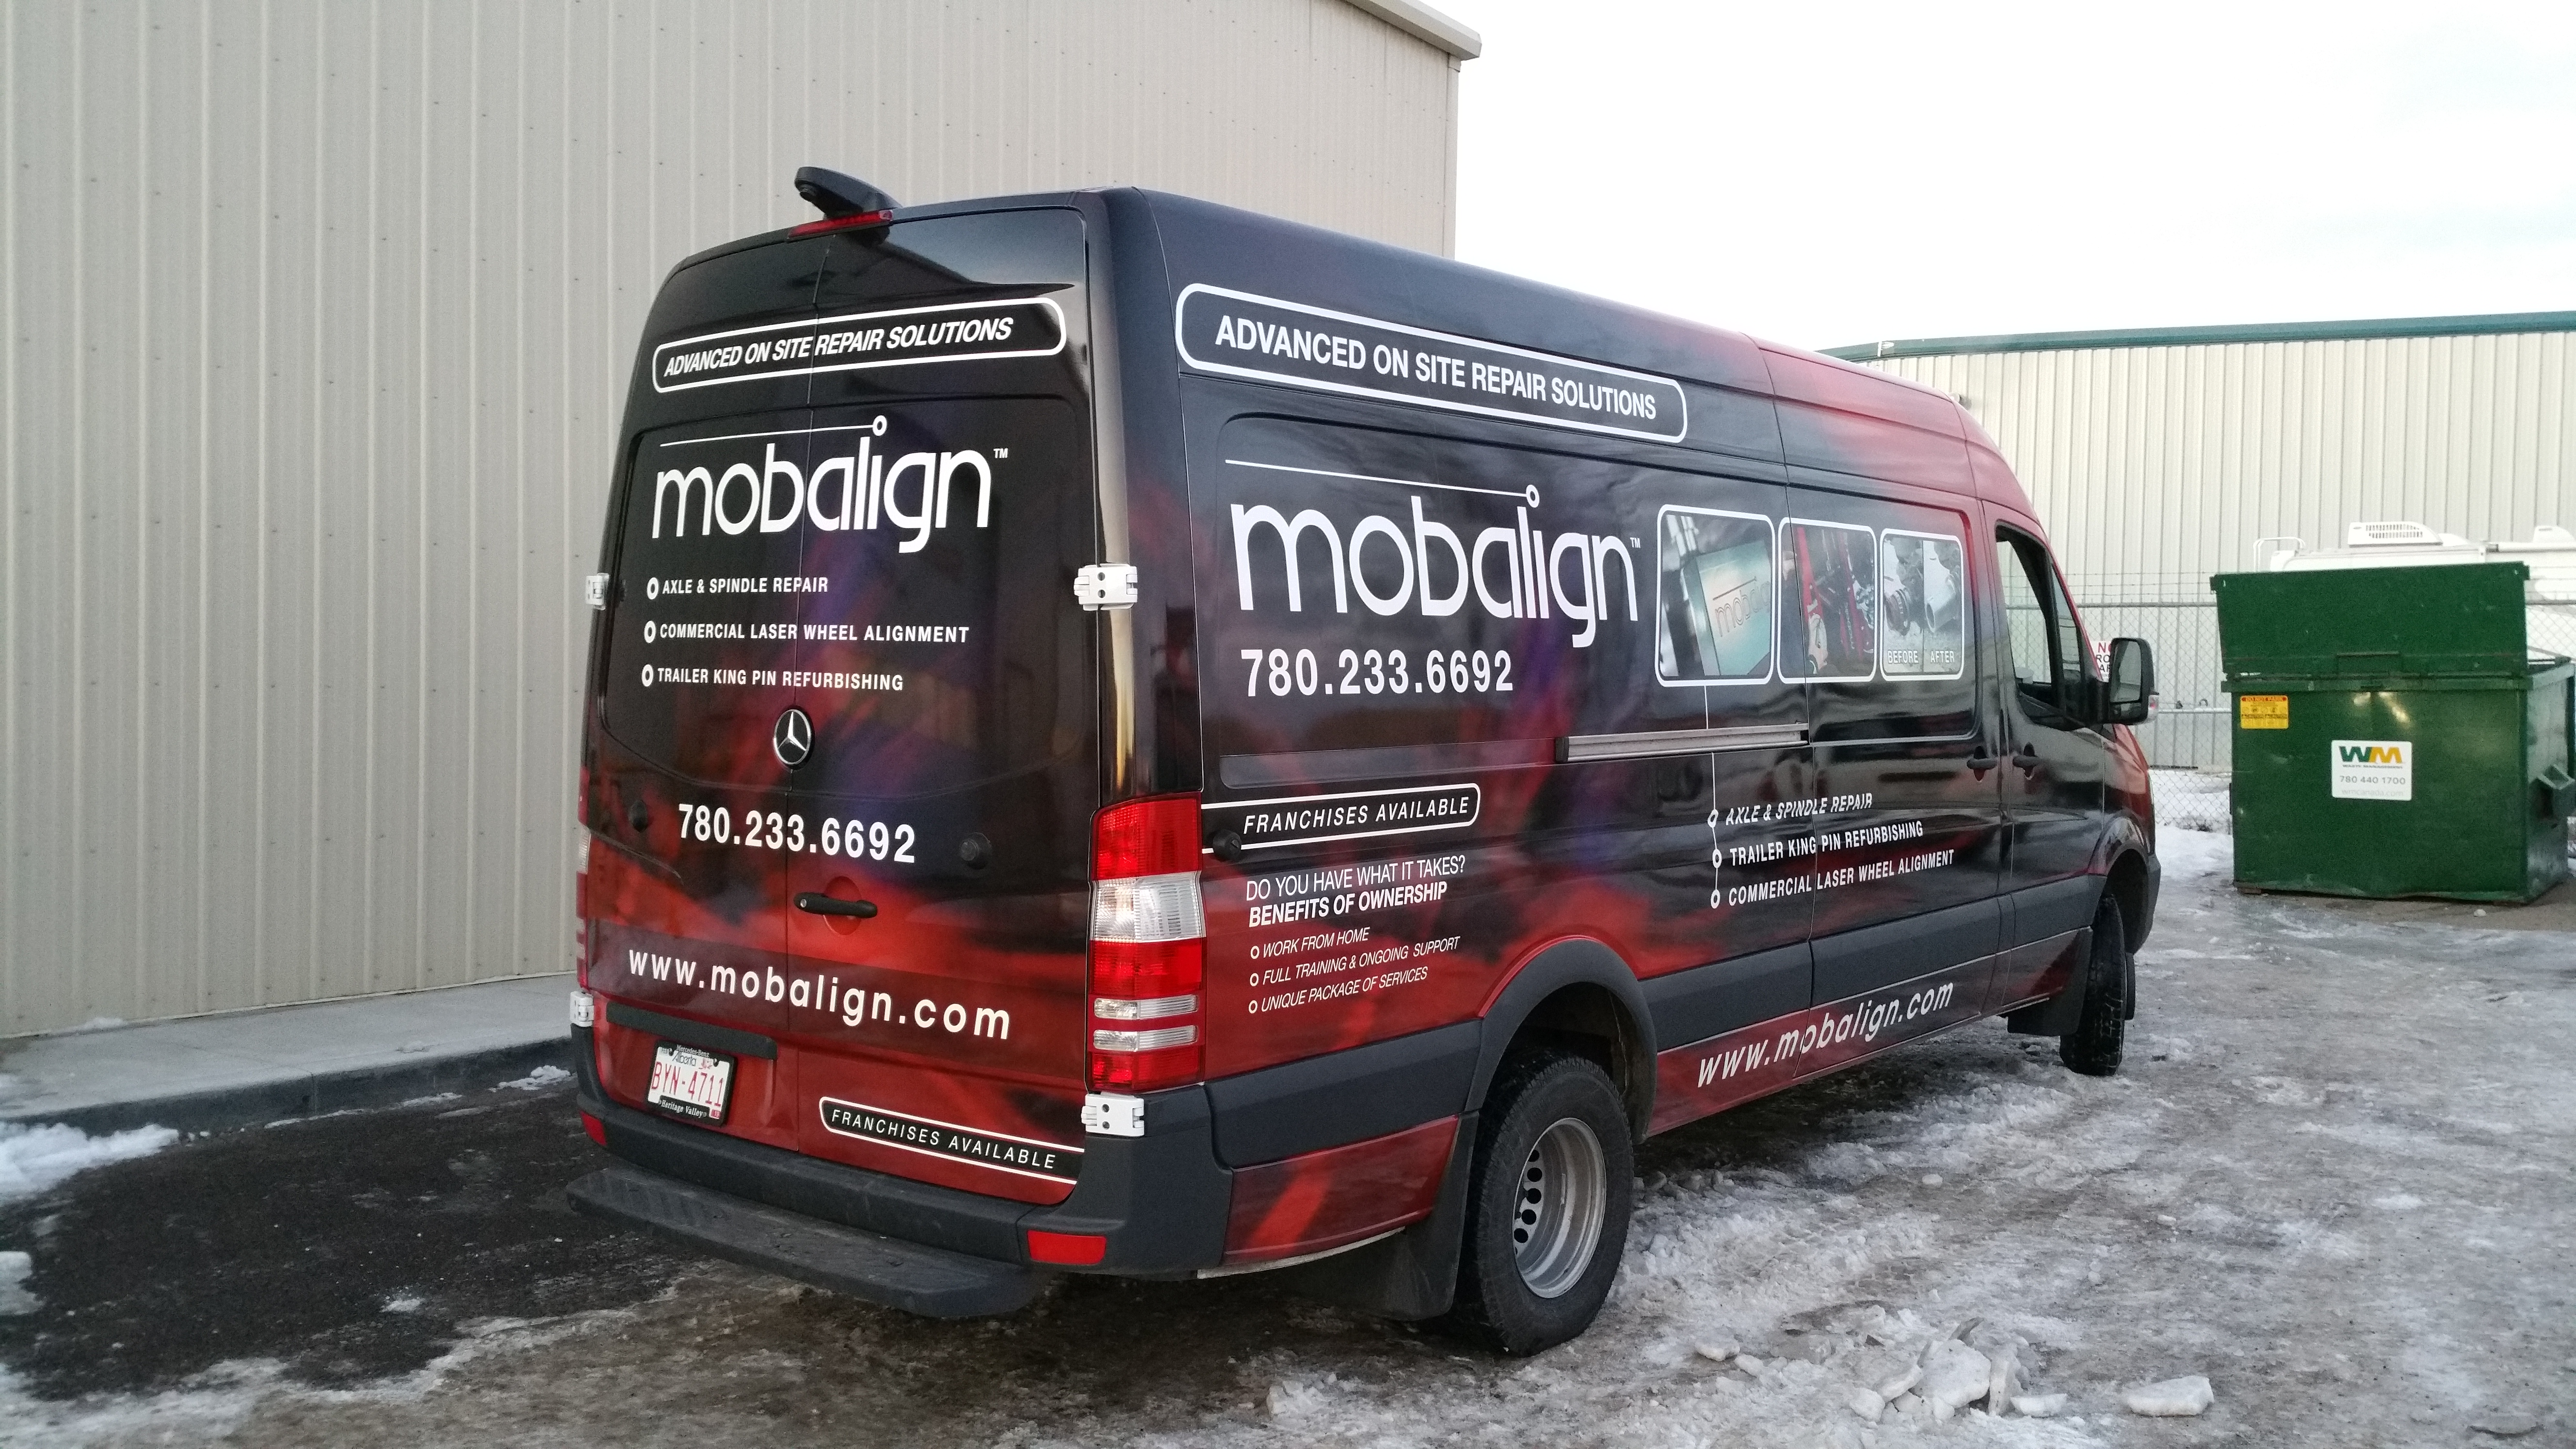 Mobalign